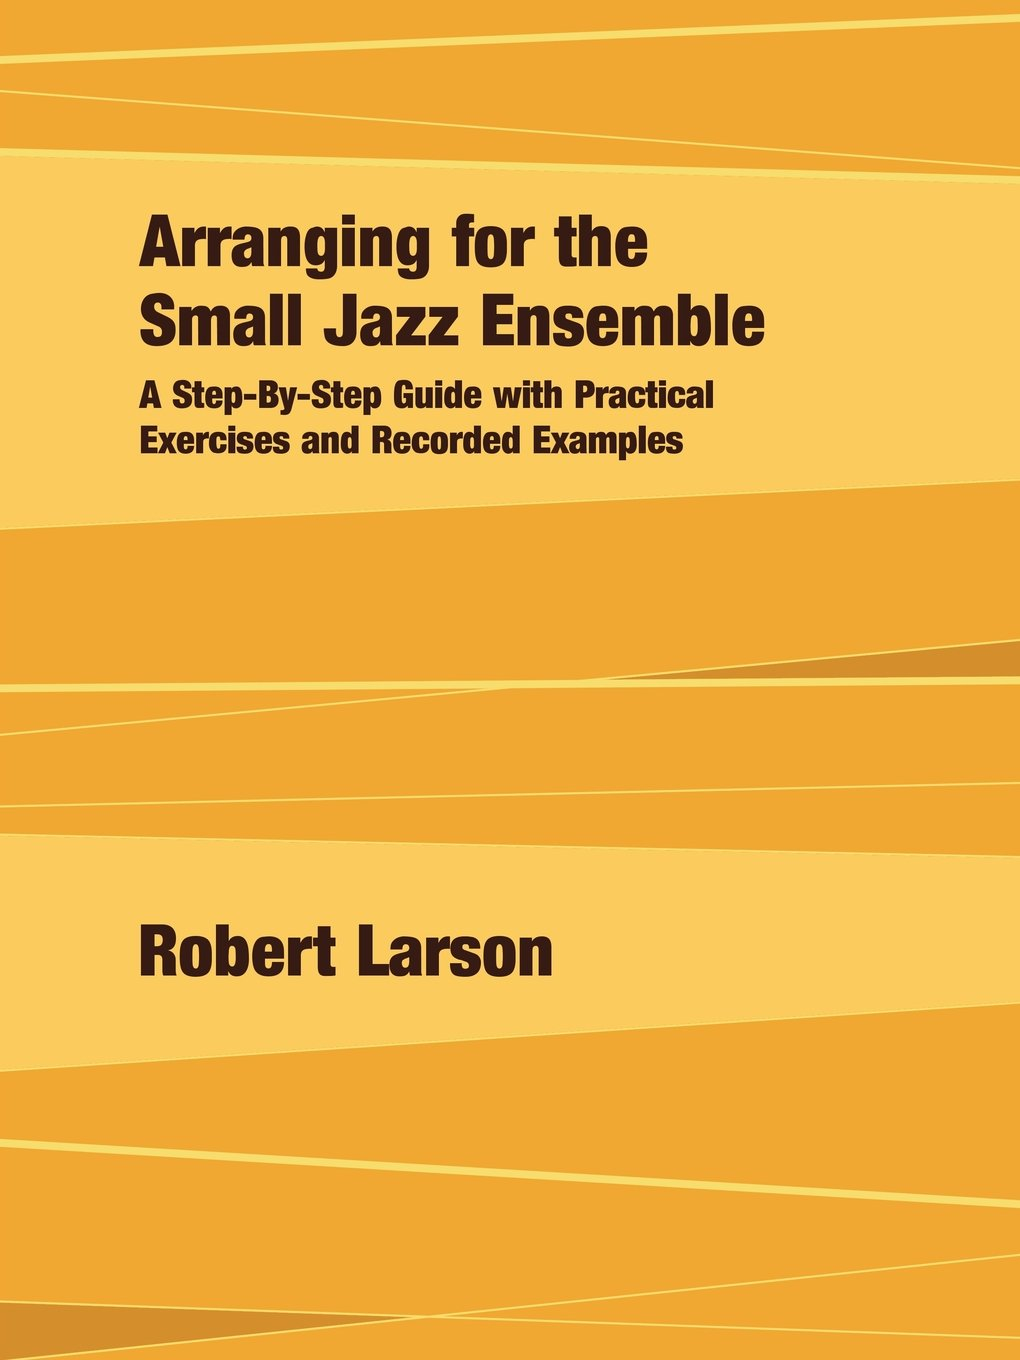 Read Online Arranging for the Small Jazz Ensemble: A Step-by-Step Guide with Practical Exercises and Recorded Examples pdf